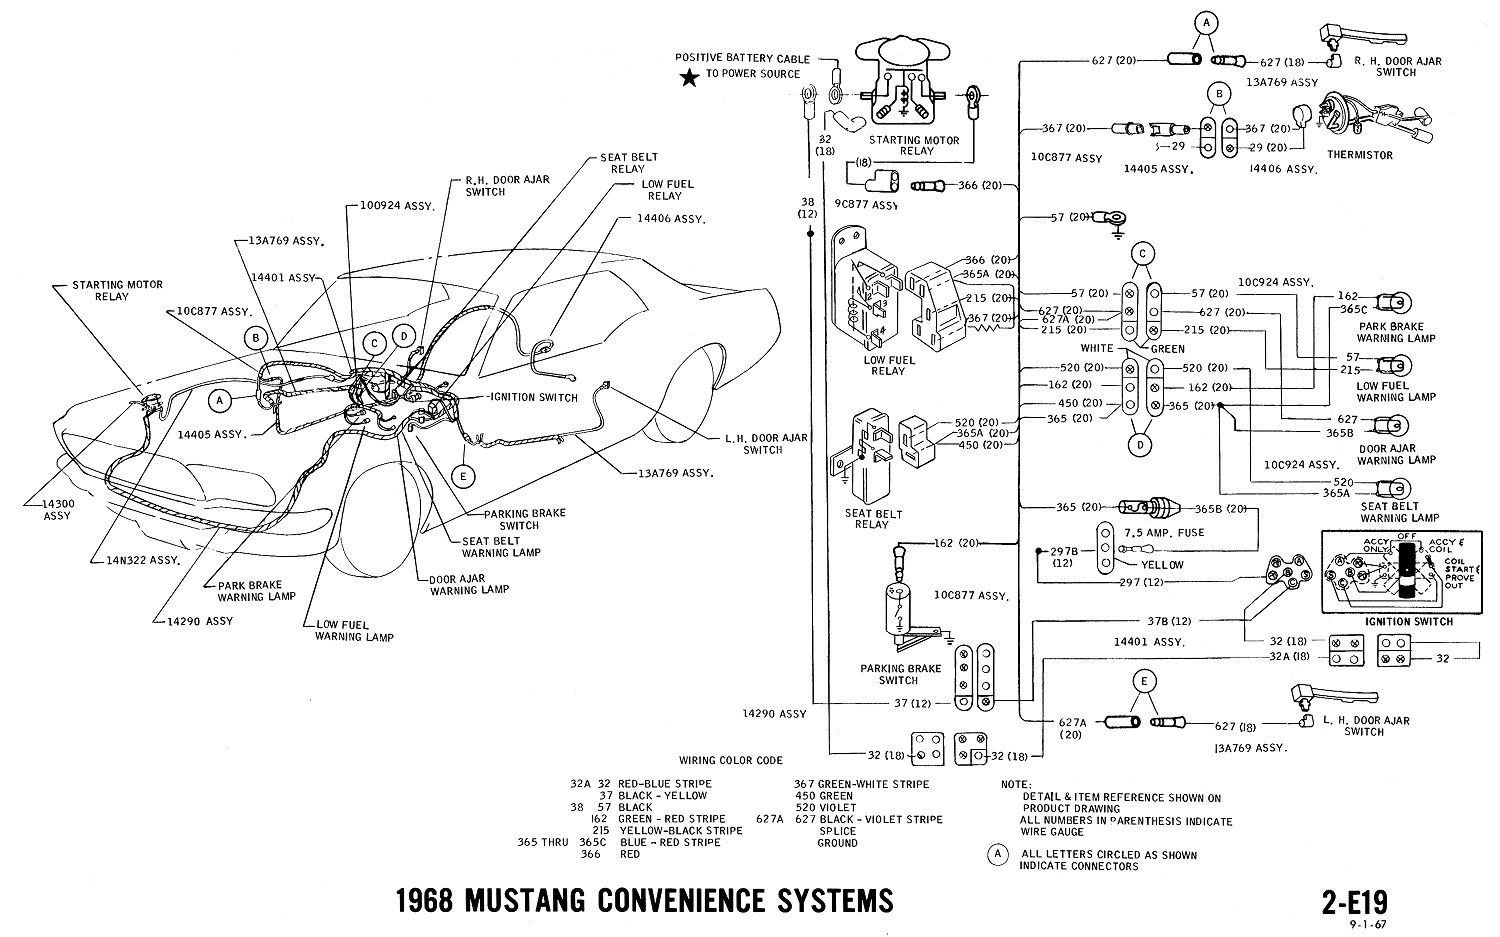 1968 mustang wiring diagram convenience systems 65 mustang dash wiring diagram 1965 ford mustang wiring diagram 1965 ford mustang wiring diagrams at mifinder.co